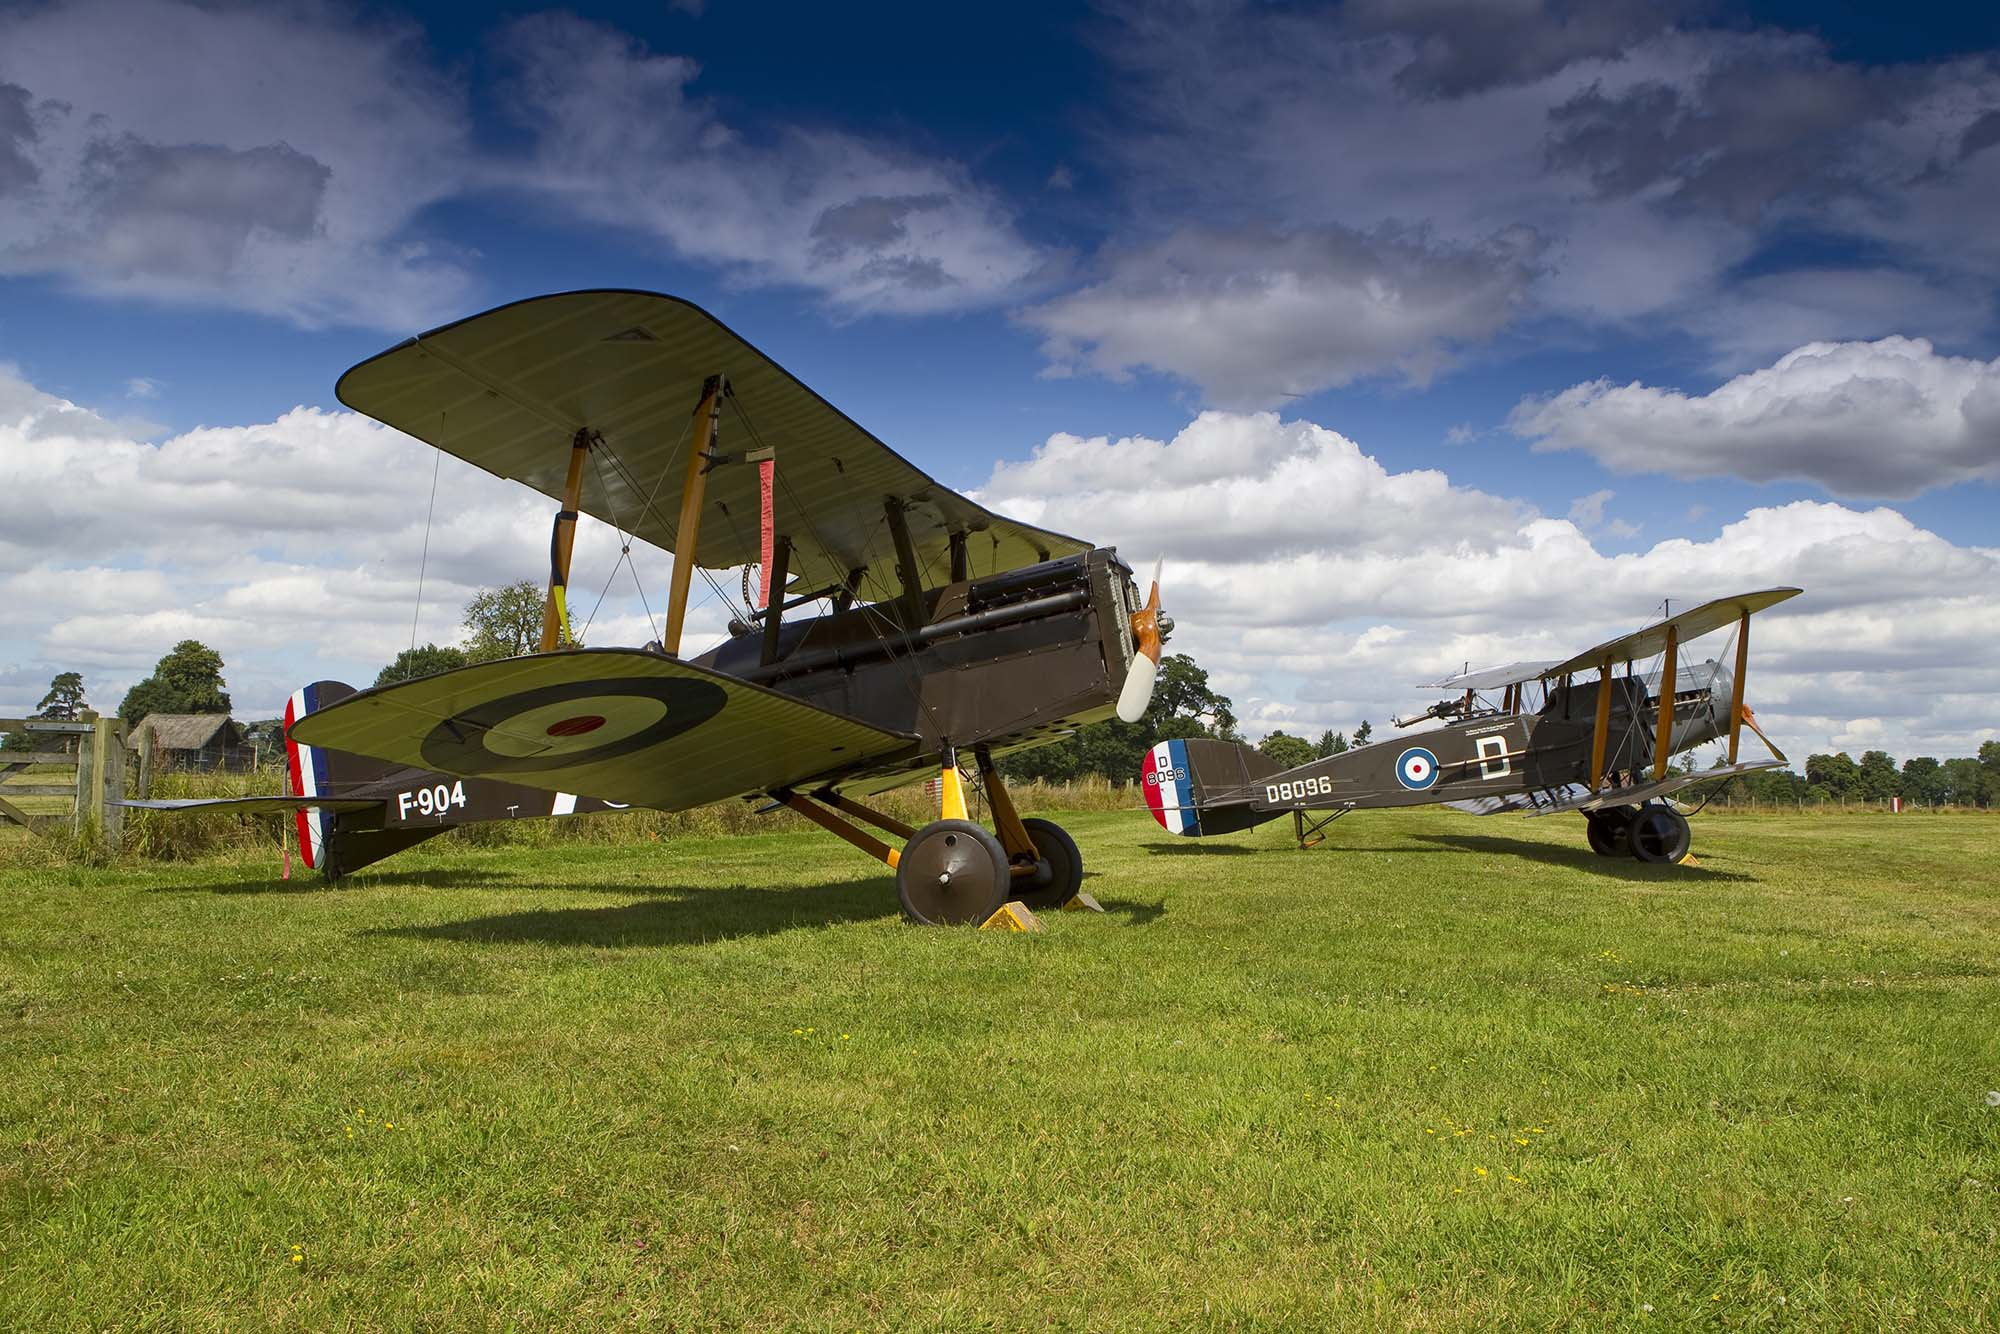 a photo of two biplanes lined up next to each other on a grassy airfield